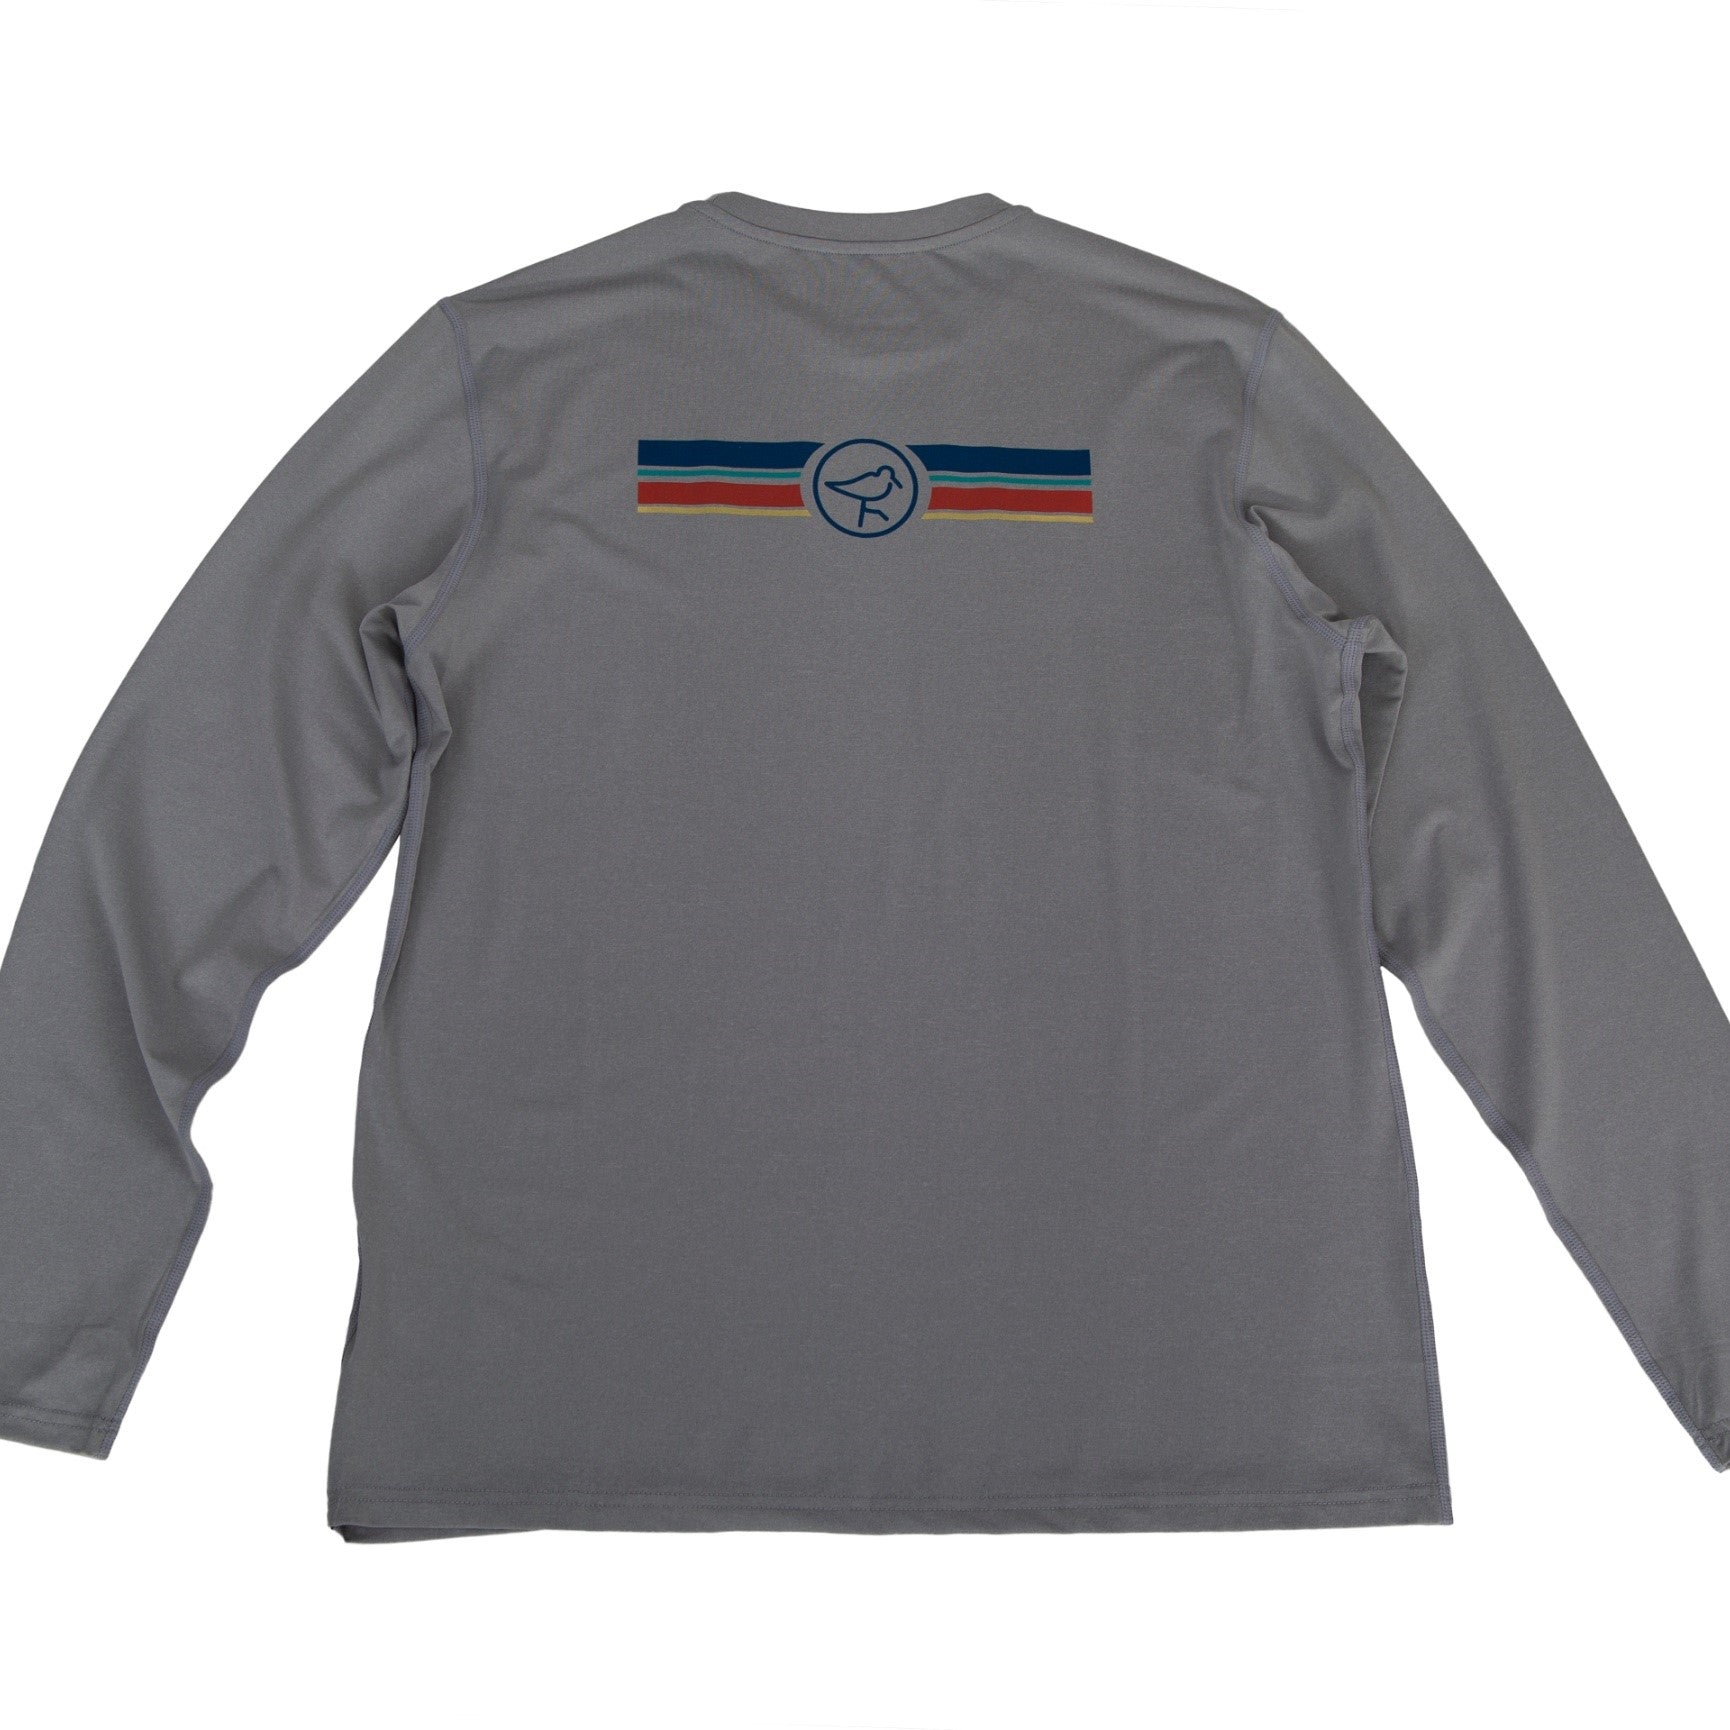 EVERYWHERE SAND TECH LONG-SLEEVE TEE GREY